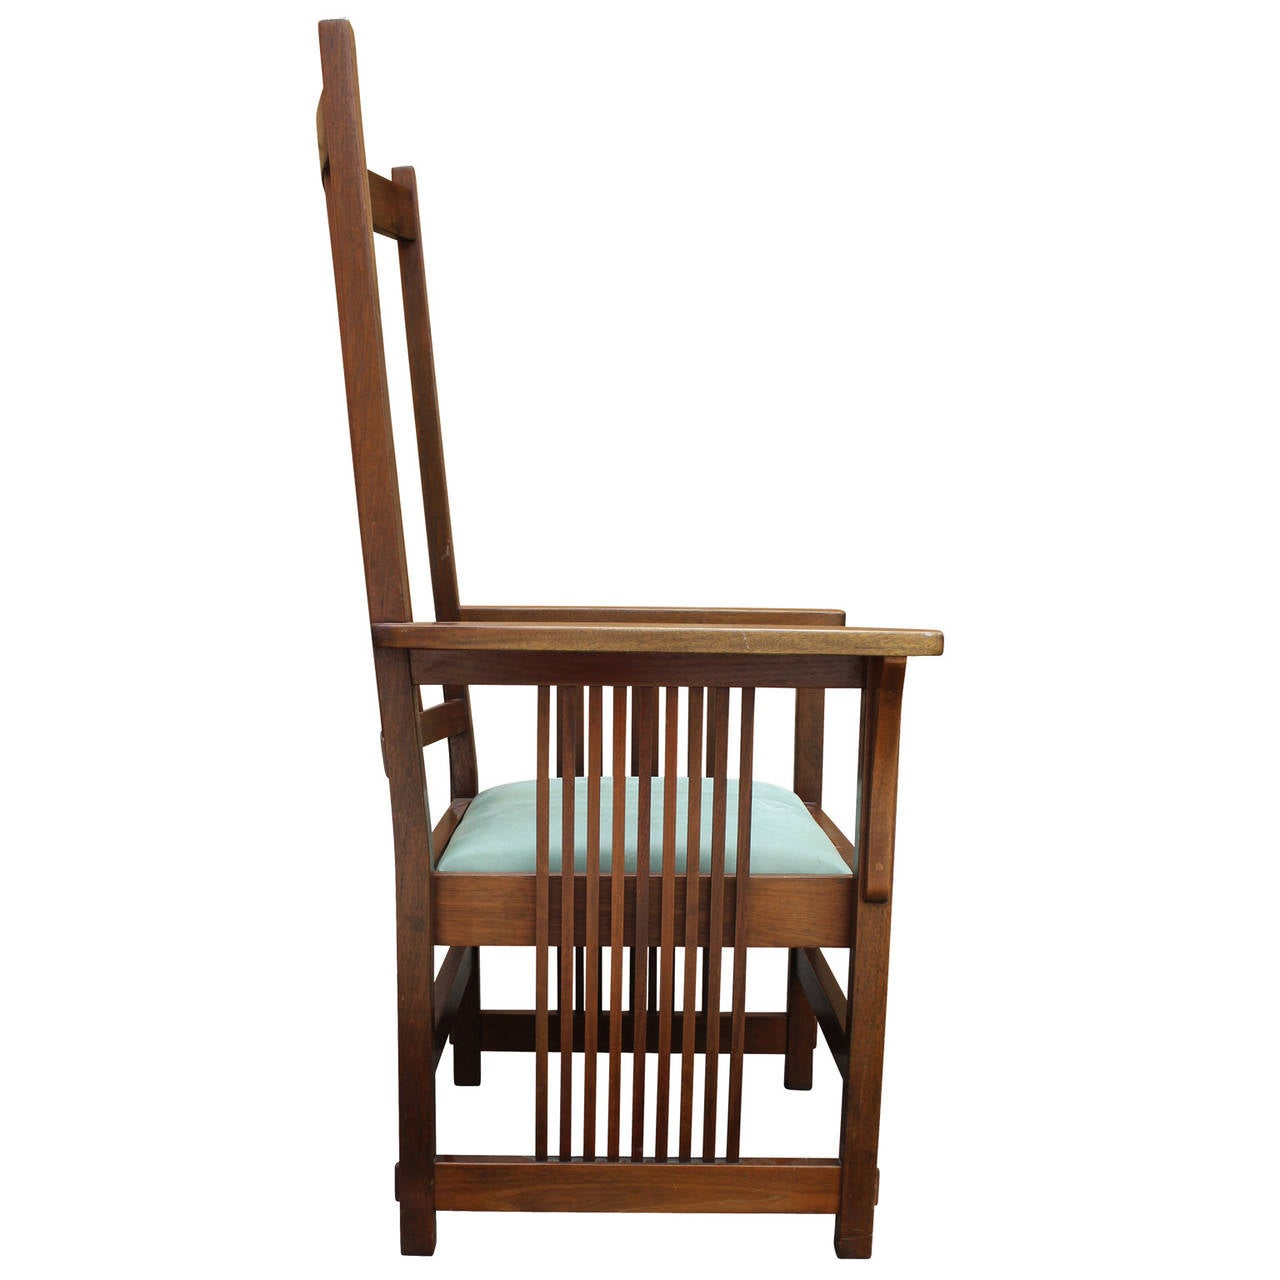 frank lloyd wright style armchair at 1stdibs frank lloyd wright inspired small house plans